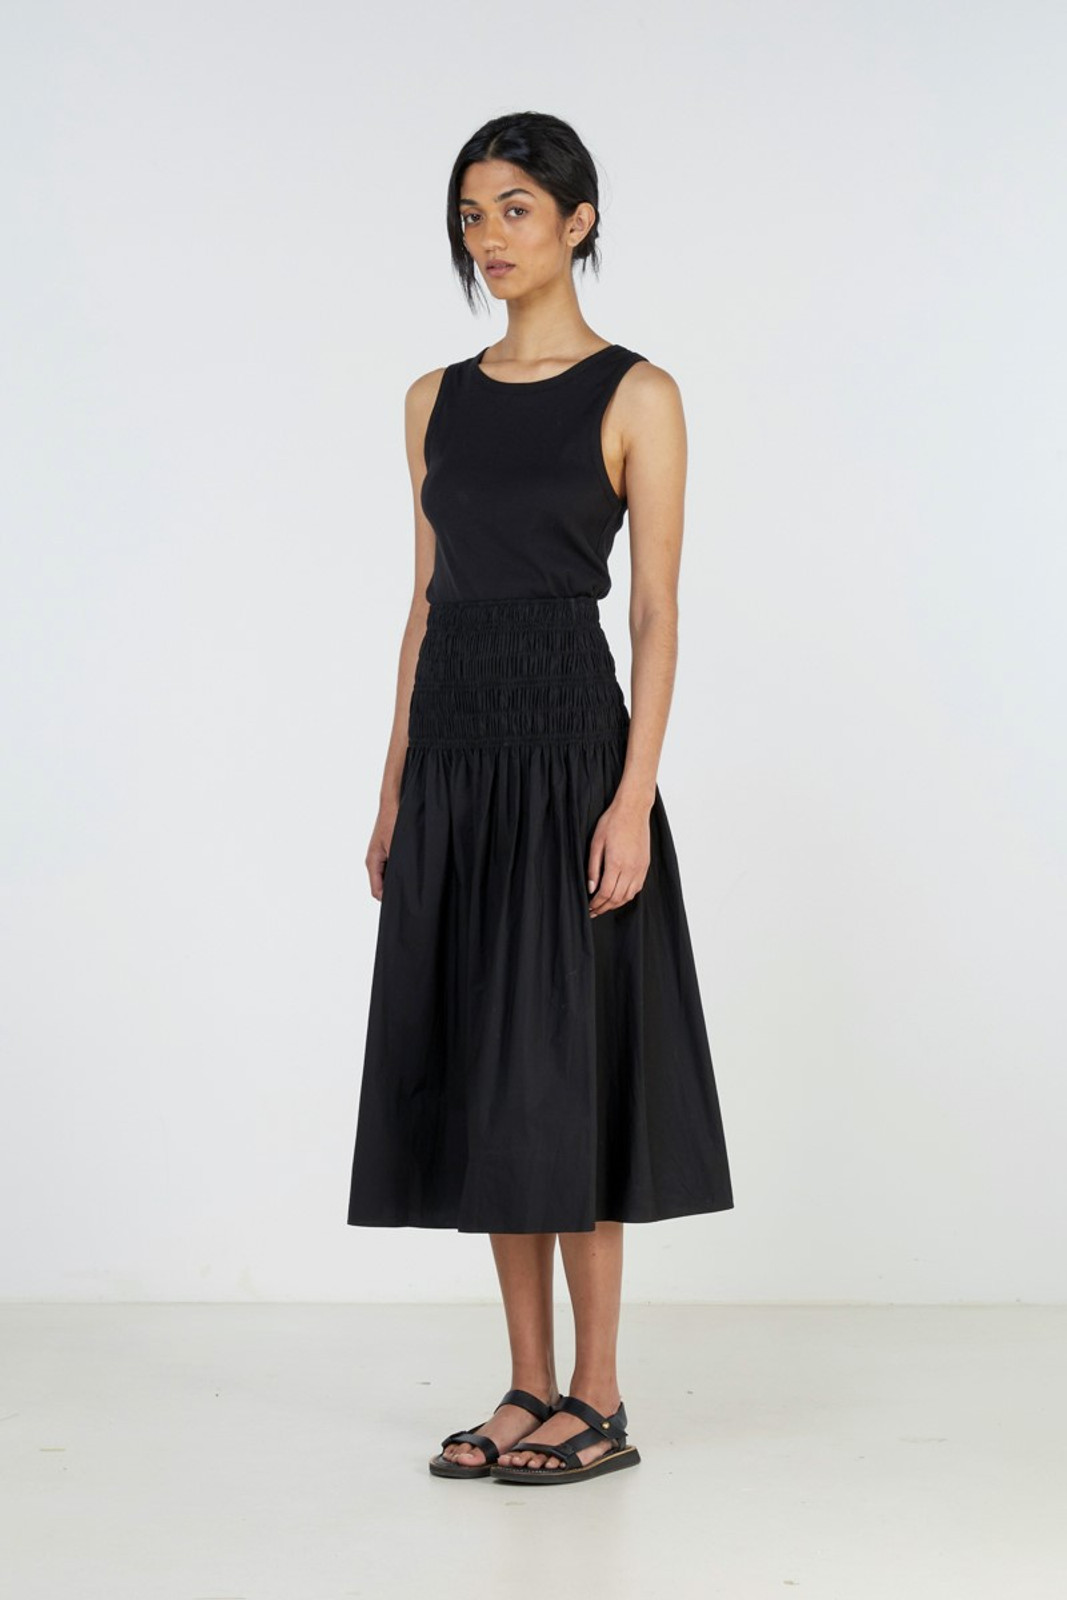 Elka Collective Theory Skirt Black  0